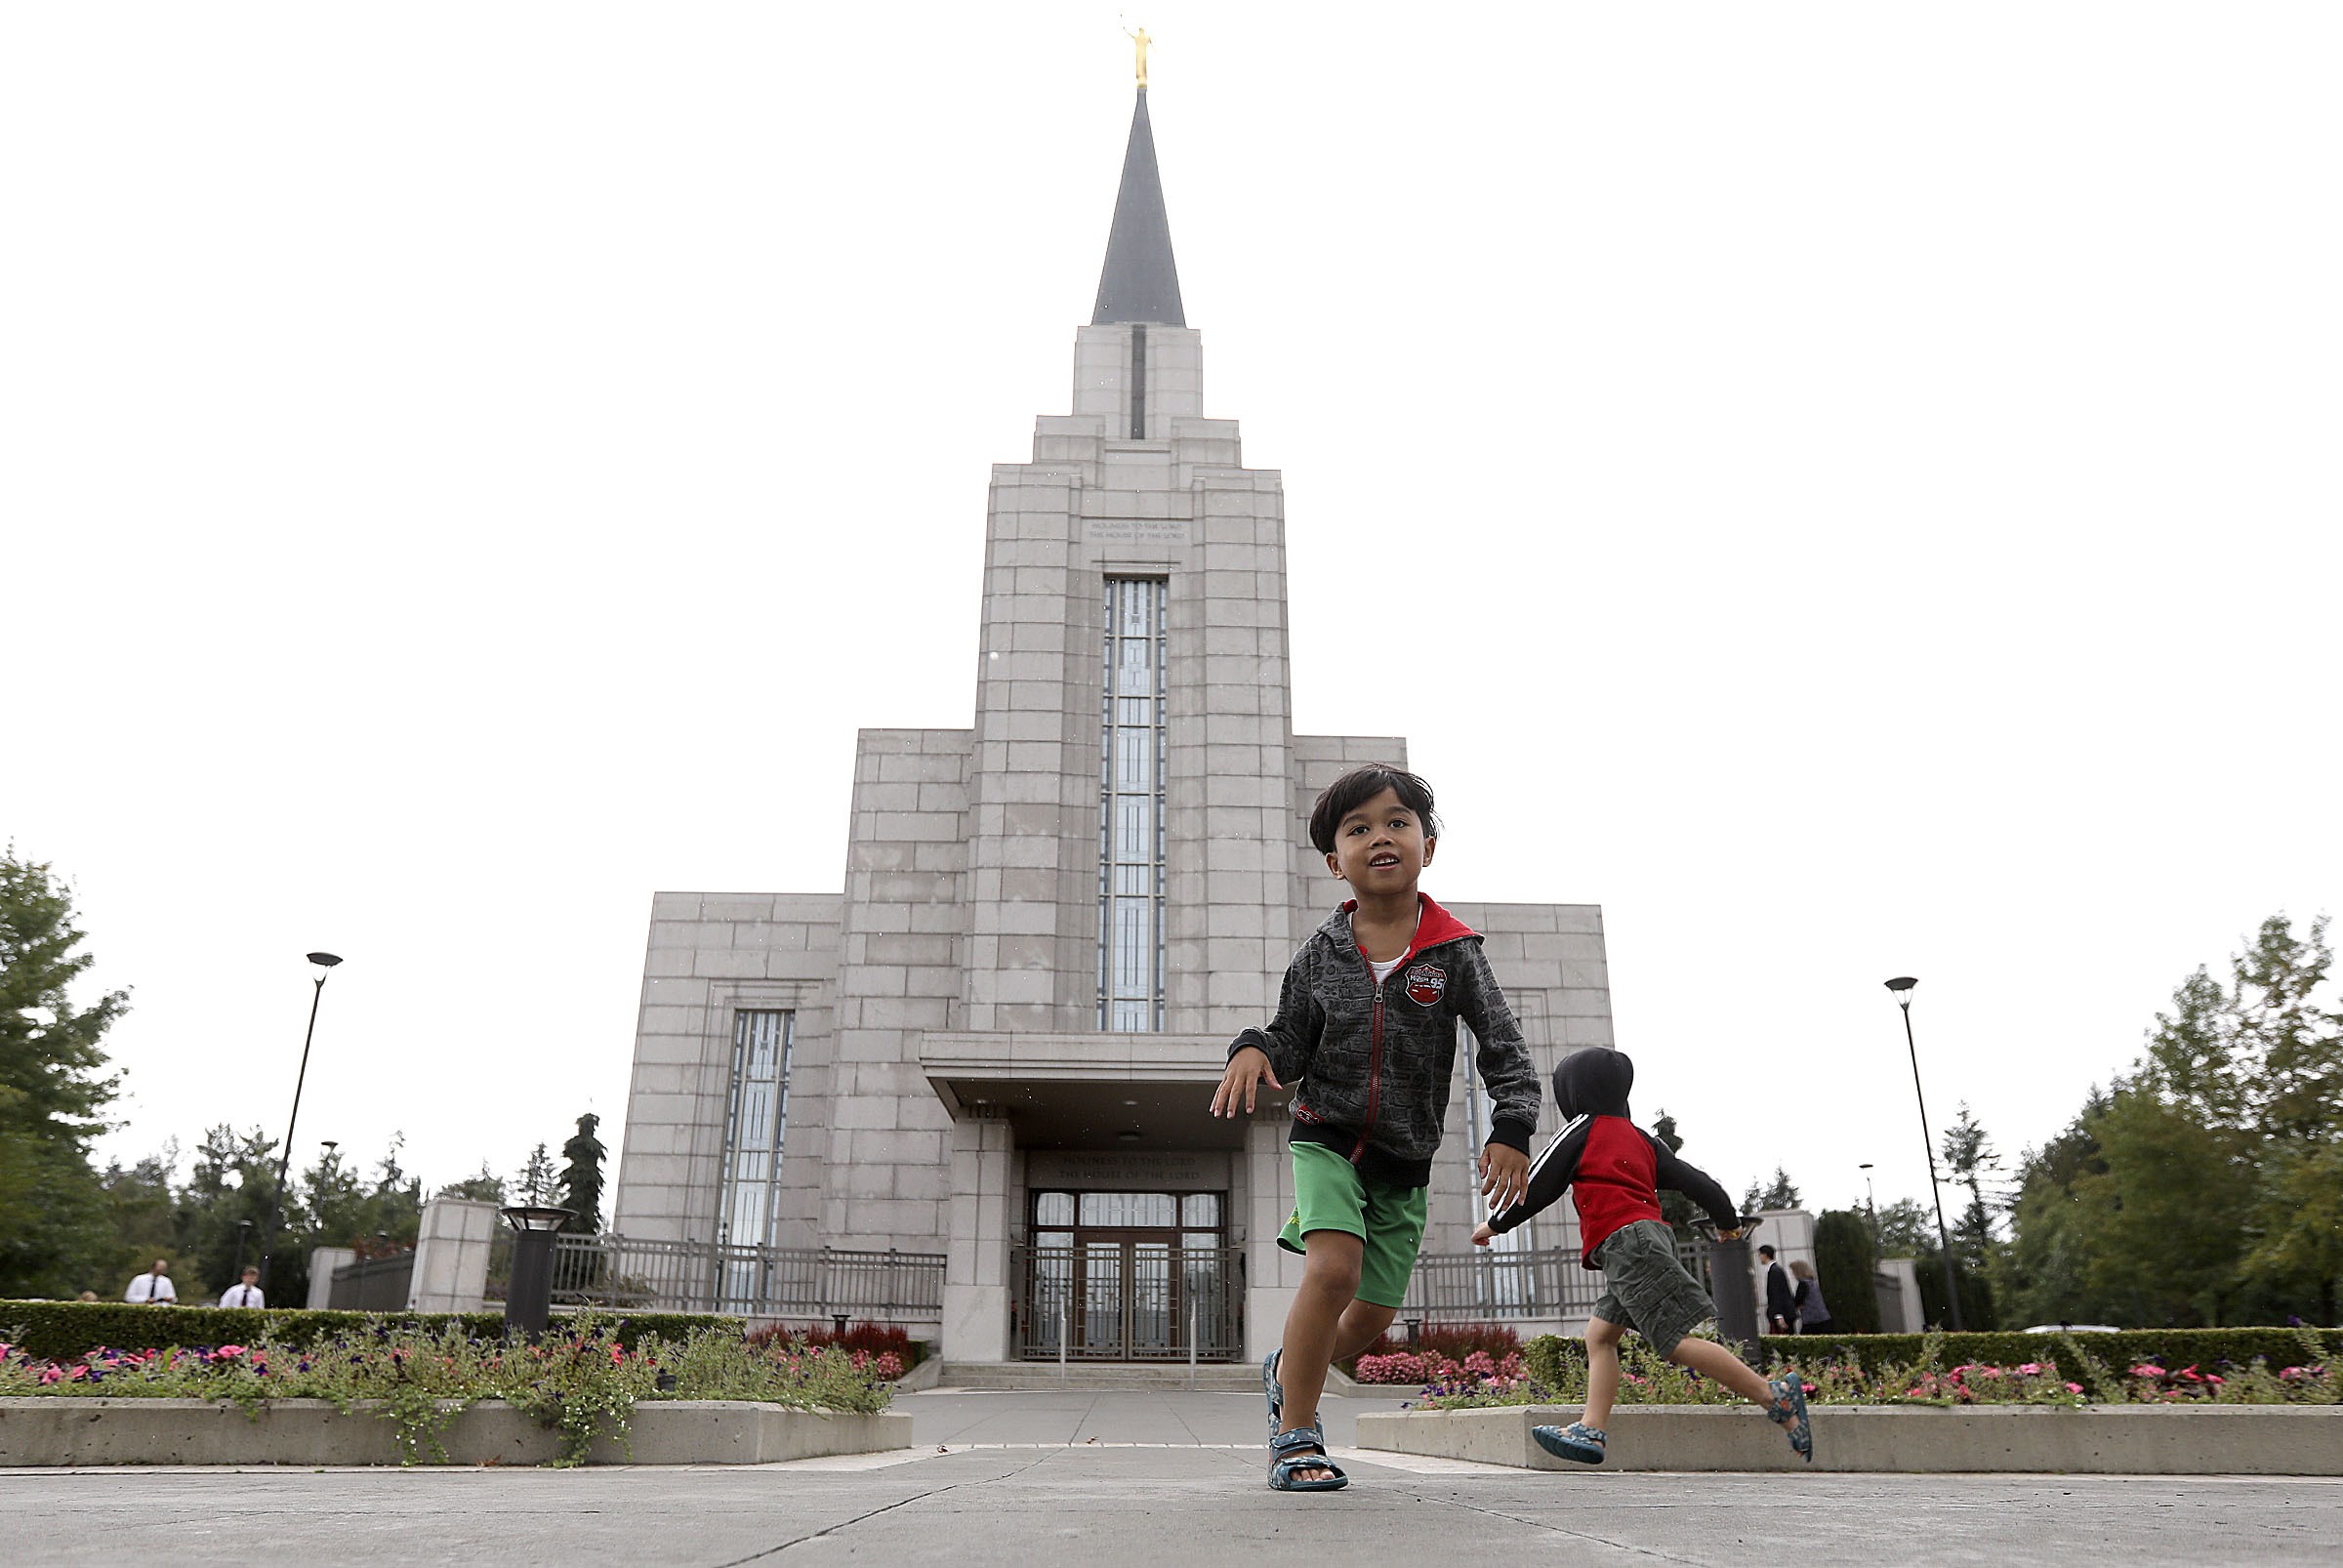 Hevenxen de Guzman and Baelfire de Guzman play in front of the Vancouver British Columbia Temple in Langley, British Columbia, on Sunday, Sept. 16, 2018.